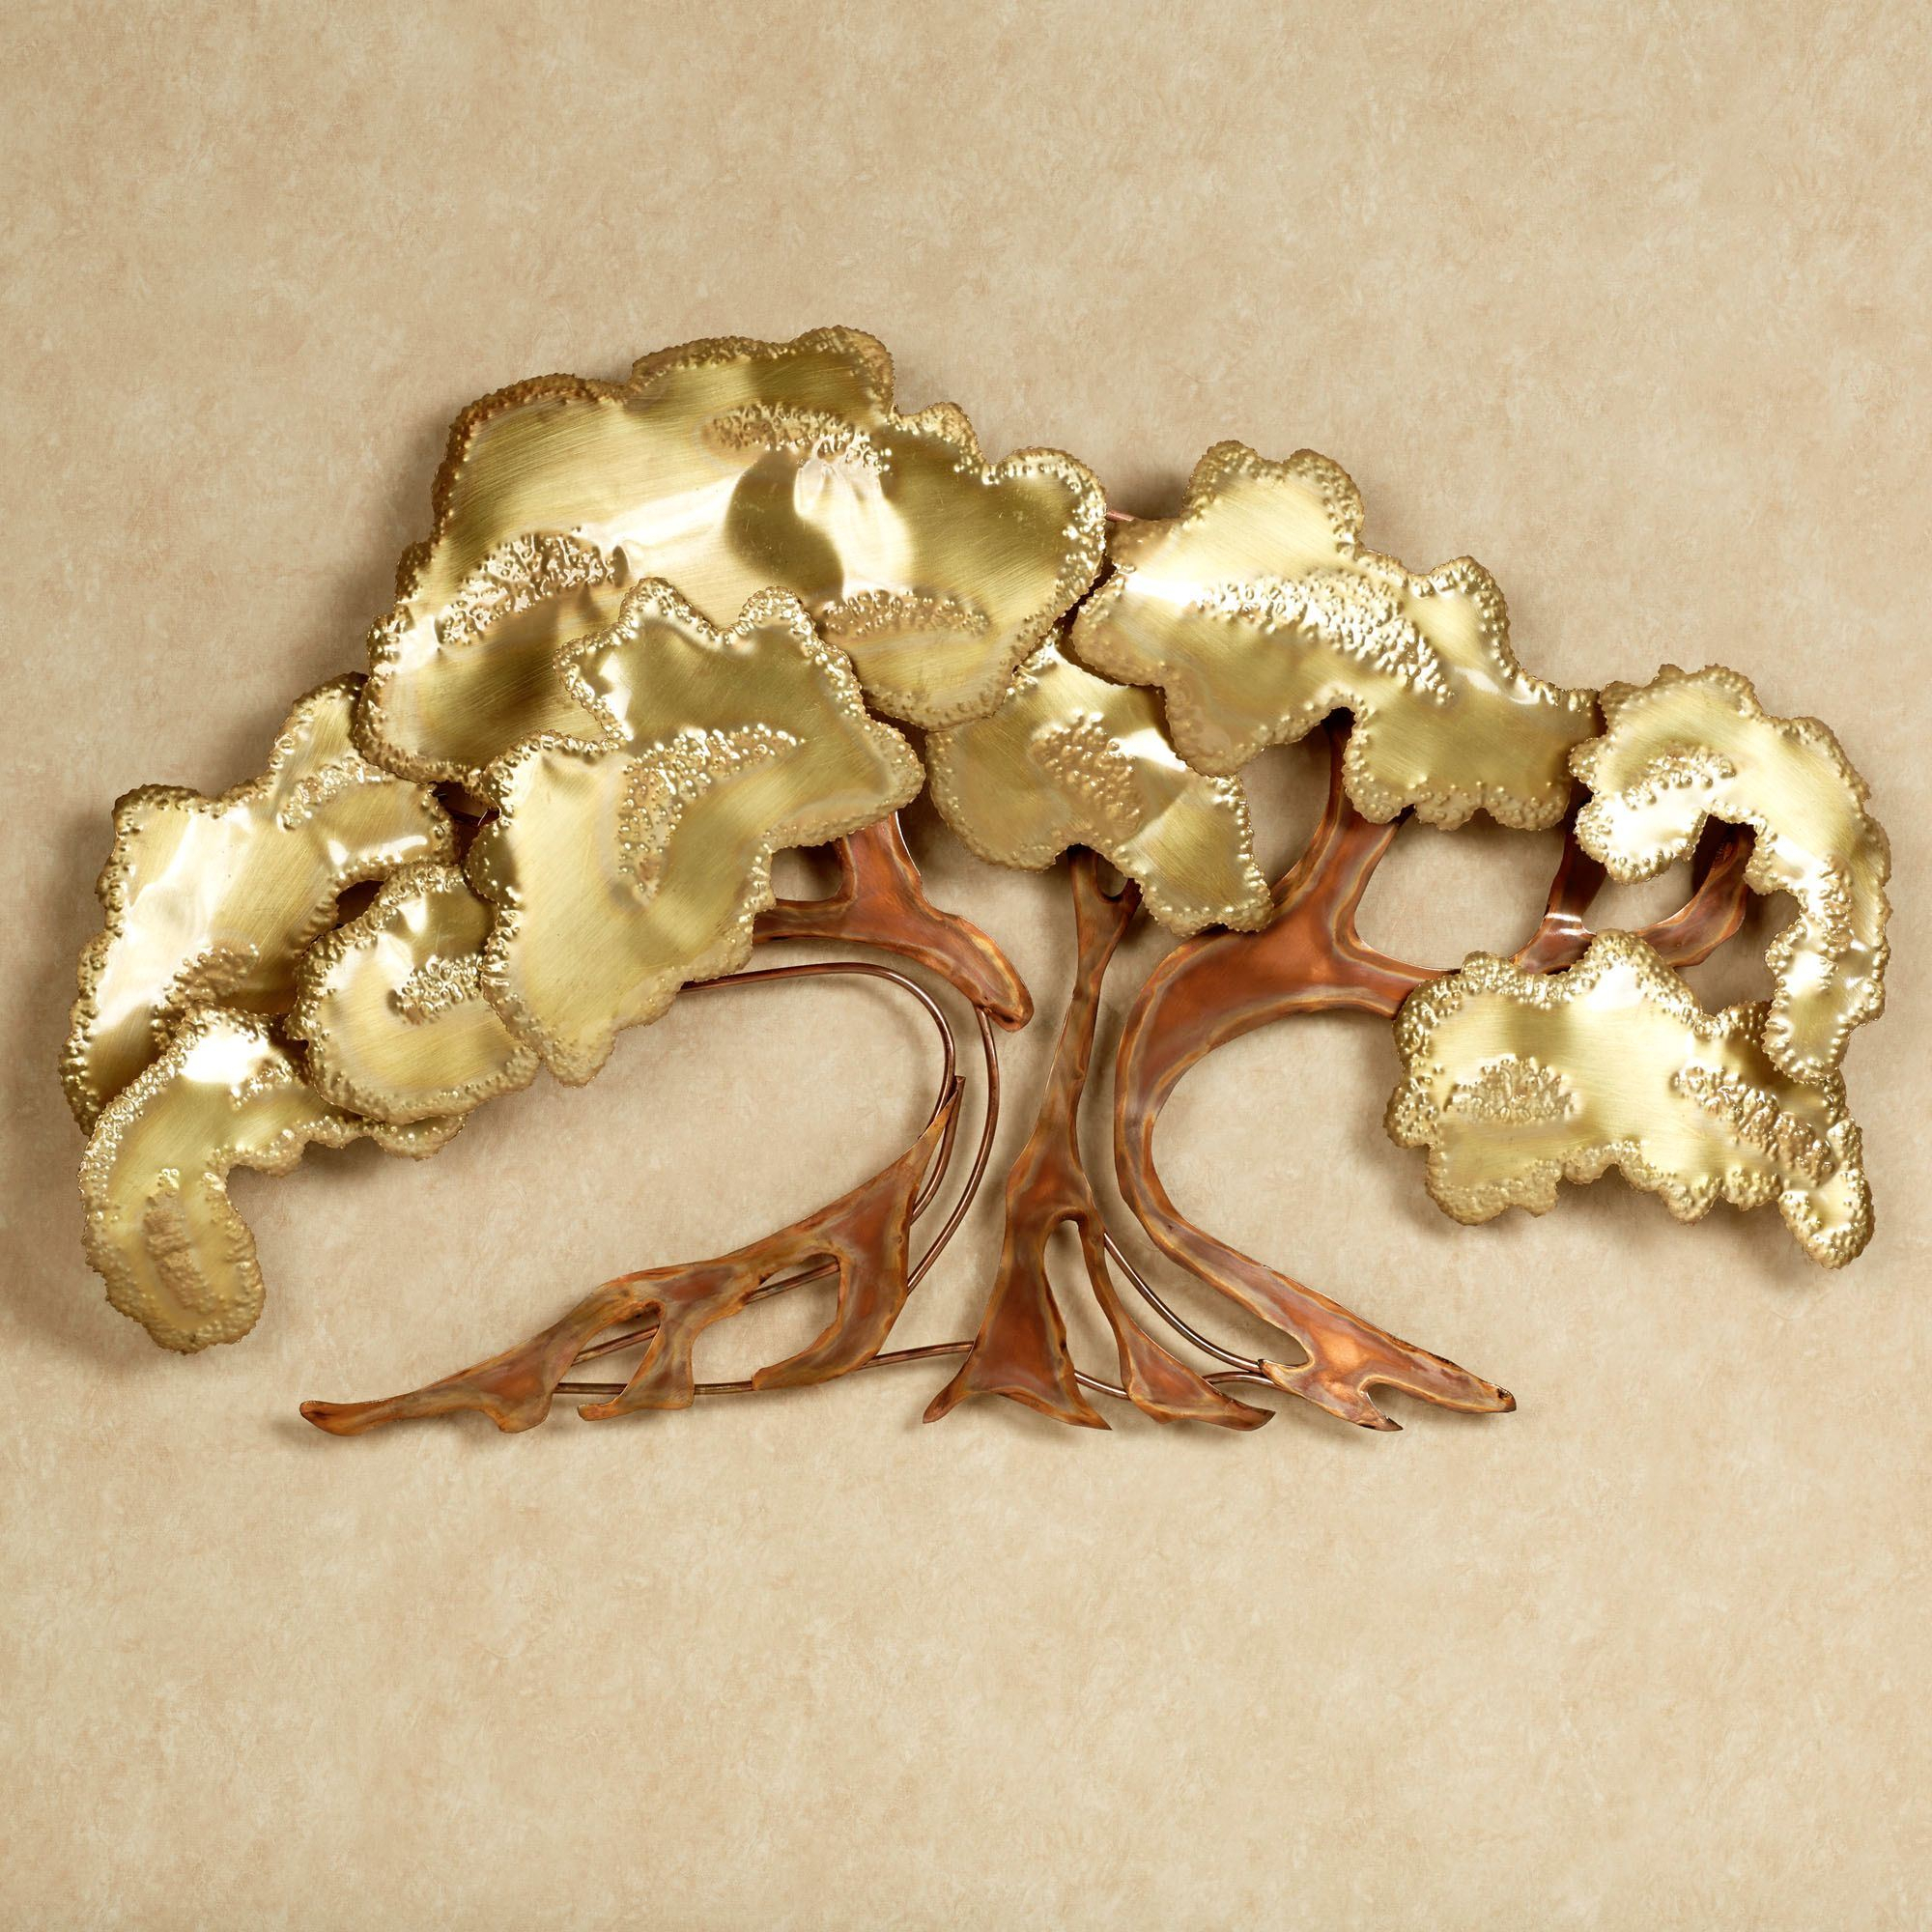 Leaves Metal Sculpture Wall Decor For Best And Newest Zen Tree Metal Wall Sculpture (View 13 of 20)